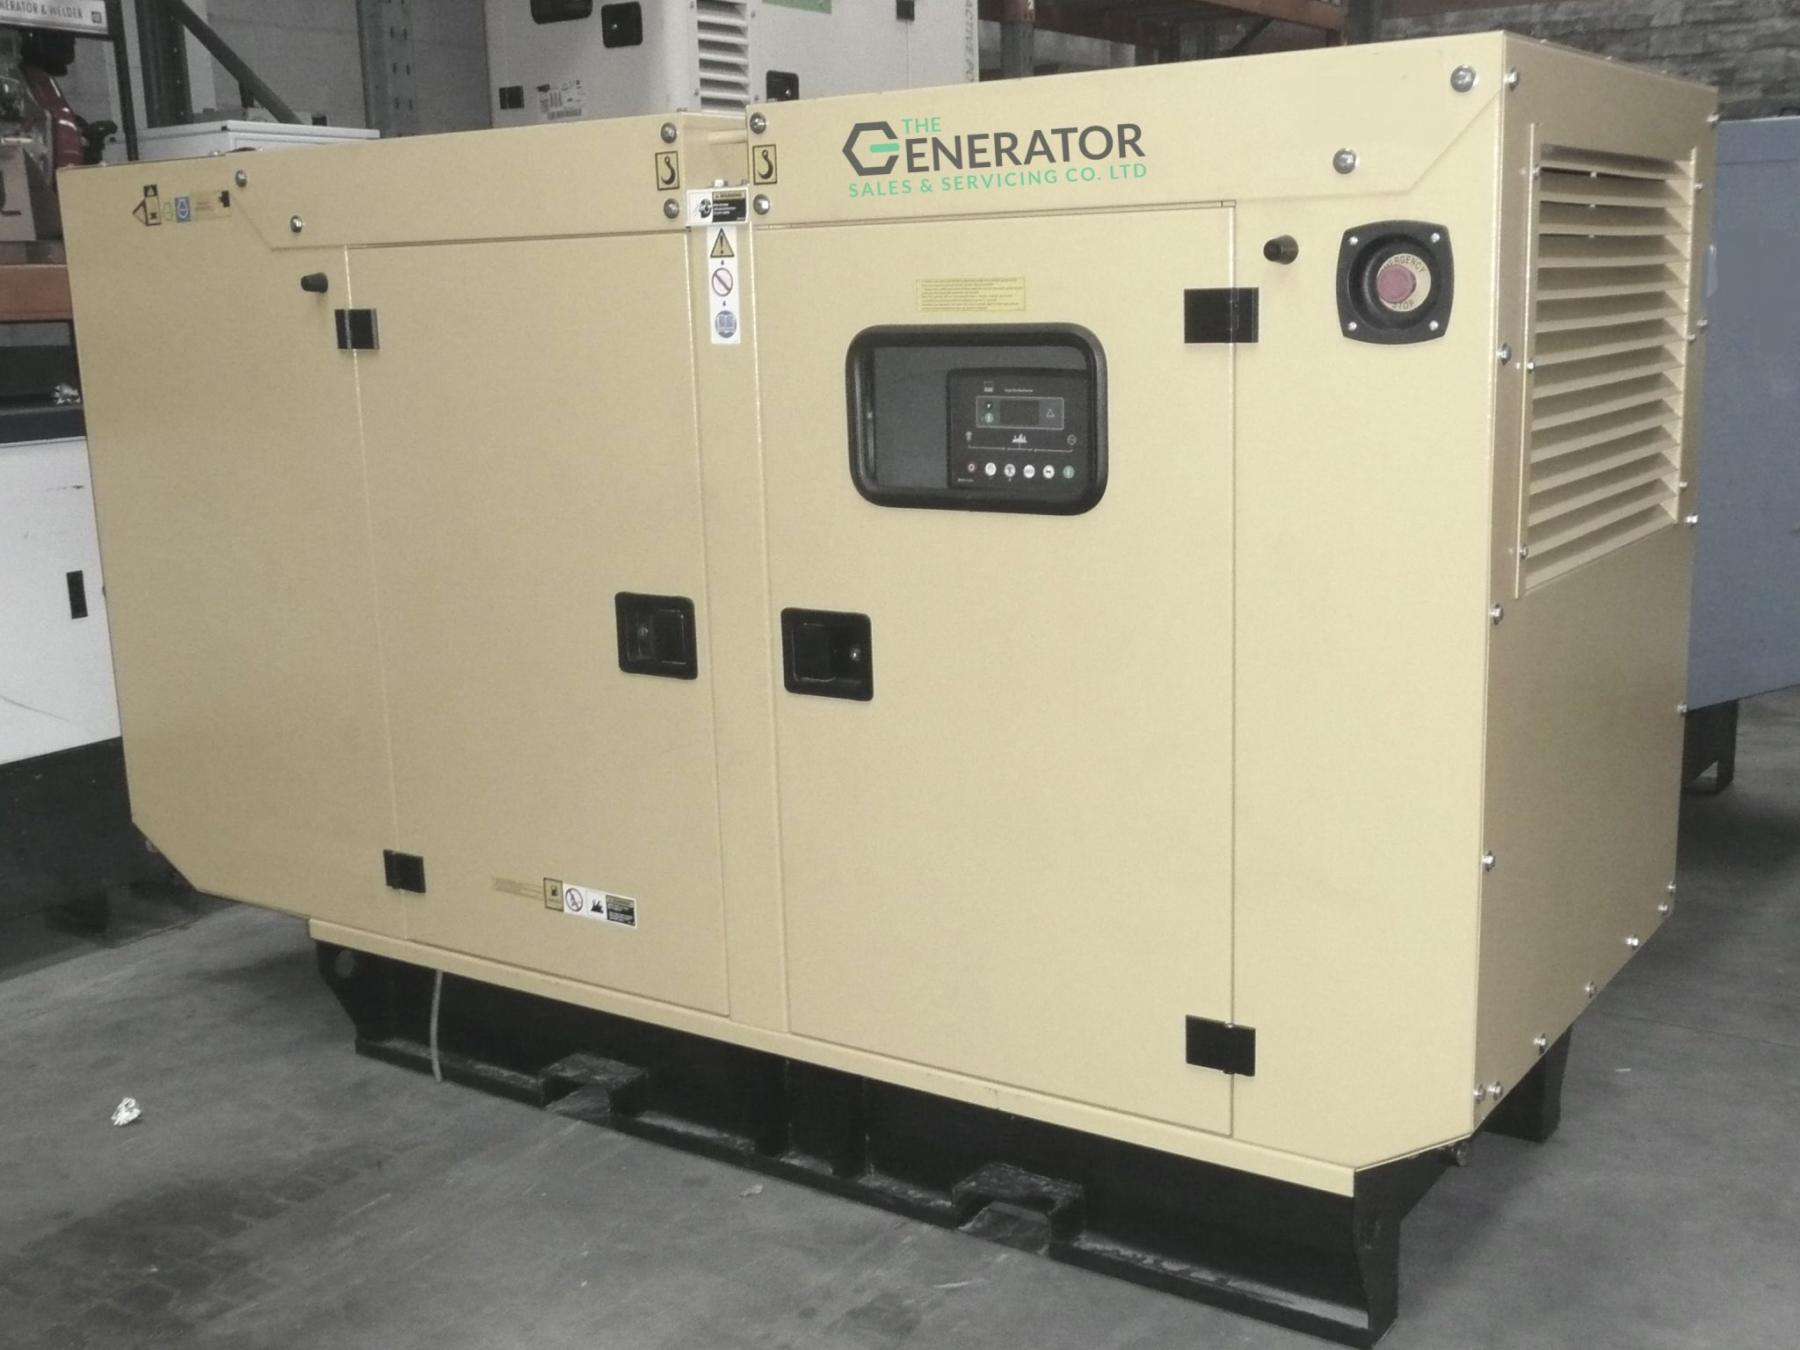 Prime Power Generators designed for Continous Power Requirements